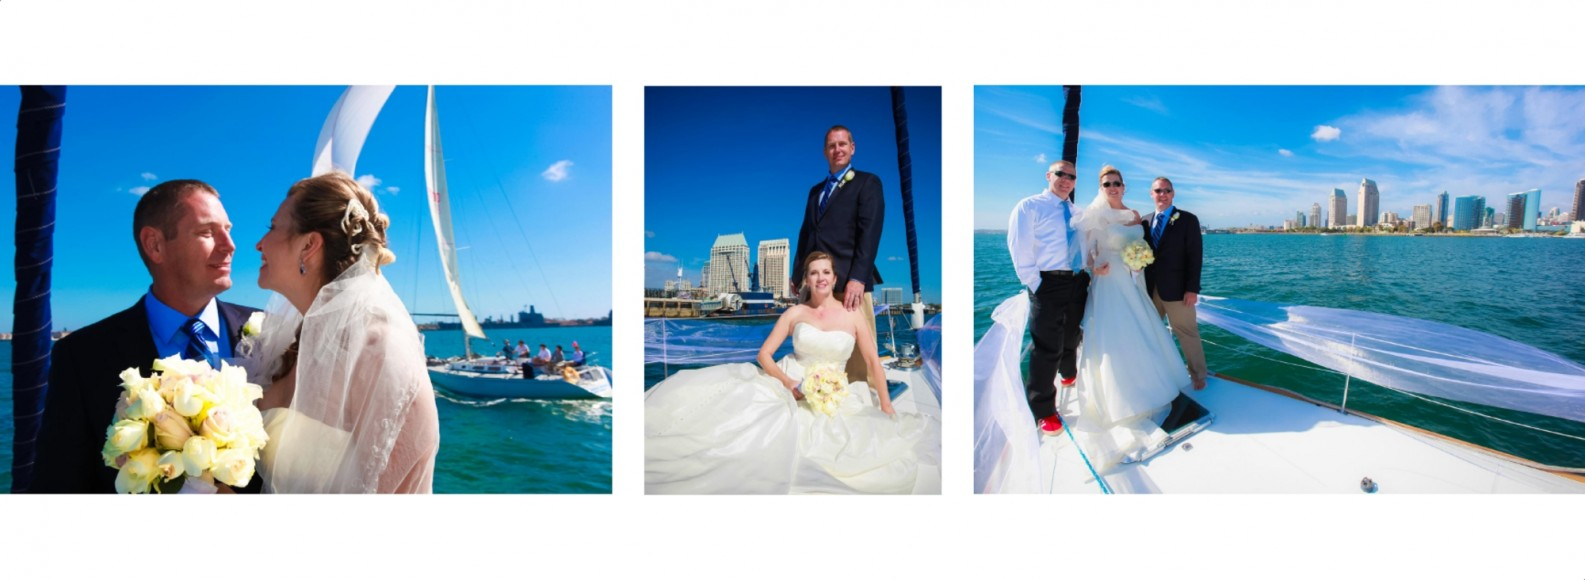 Laura and Davids Wedding Book - San Diego Yacht Wedding by Wedding Photographers Andrew Abouna - Pages 24-25